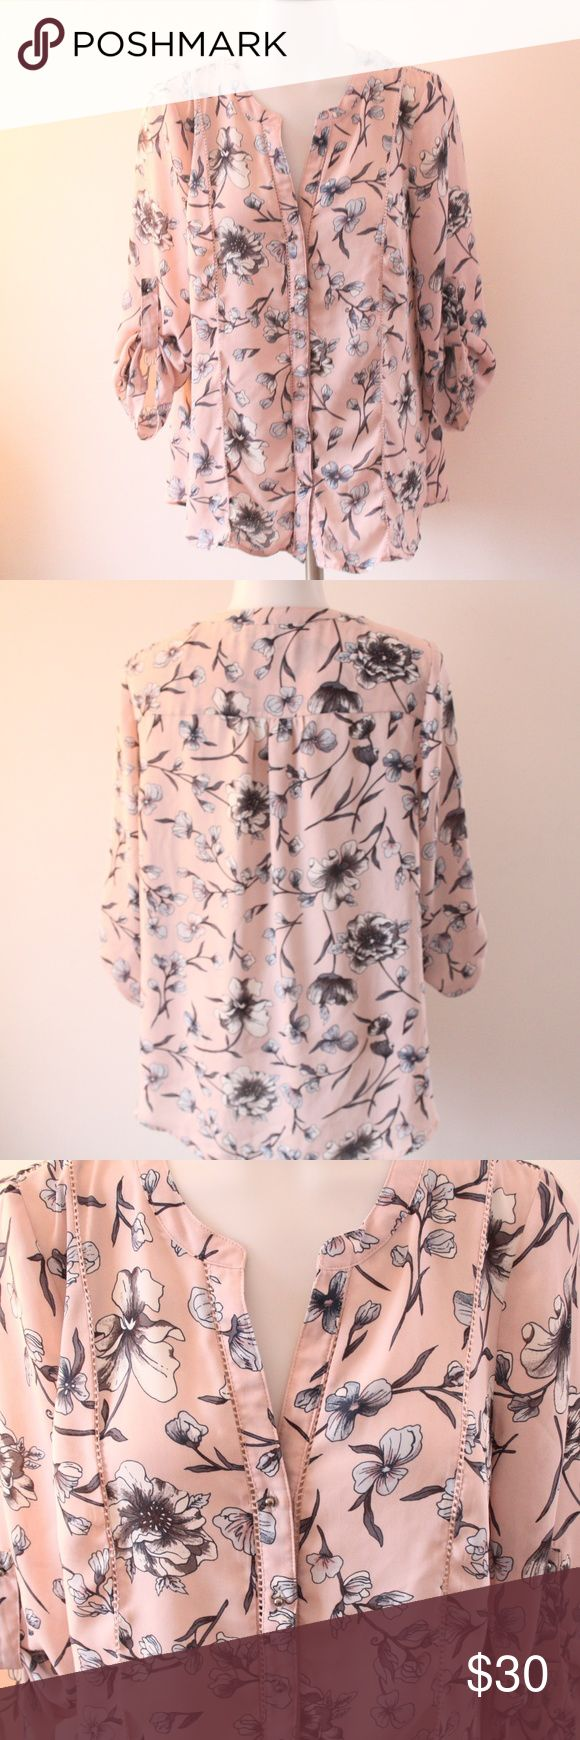 Small Daniel rainn Pink Floral Long Sleeve Top Small Daniel rainn Pink floral Long Sleeve Top - In like new condition! This gorgeous top is a nice flowy top that is sheer like (100% Polyester). Beautiful silver ball like buttons. V-neck style.  Bust from underarm to underarm is 19.5 Inches. Daniel Rainn Tops Blouses